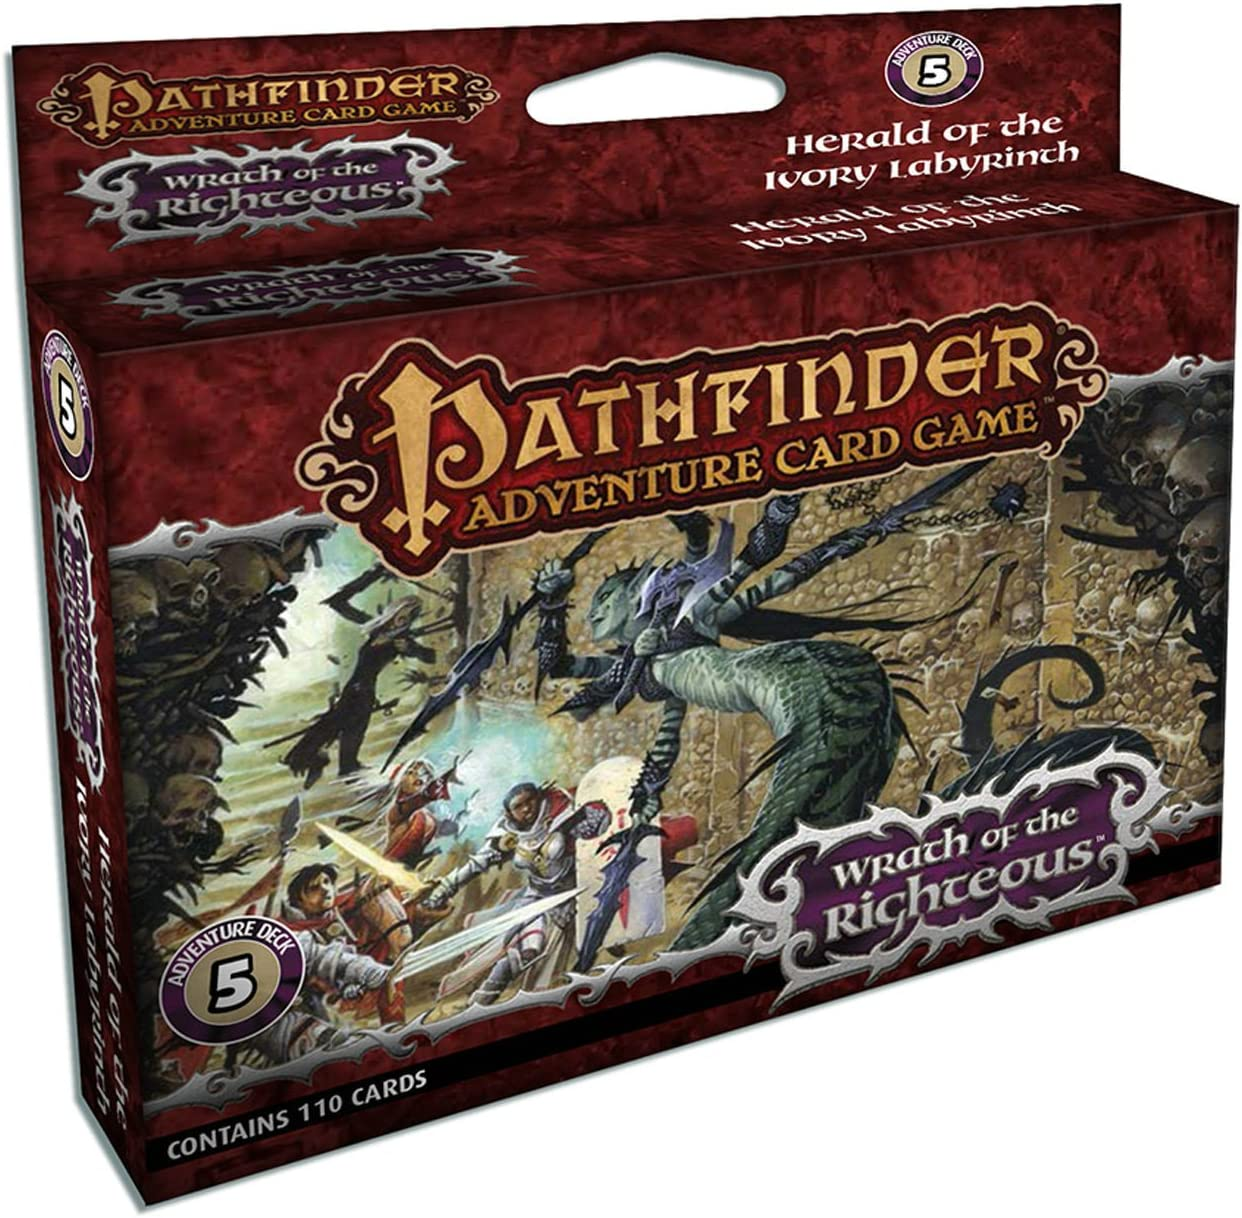 Pathfinder Adventure Card Game: Wrath of the Righteous Adventure Deck 5: Herald of the Ivory Labyrinth: Selinker, Mike: Amazon.es: Juguetes y juegos